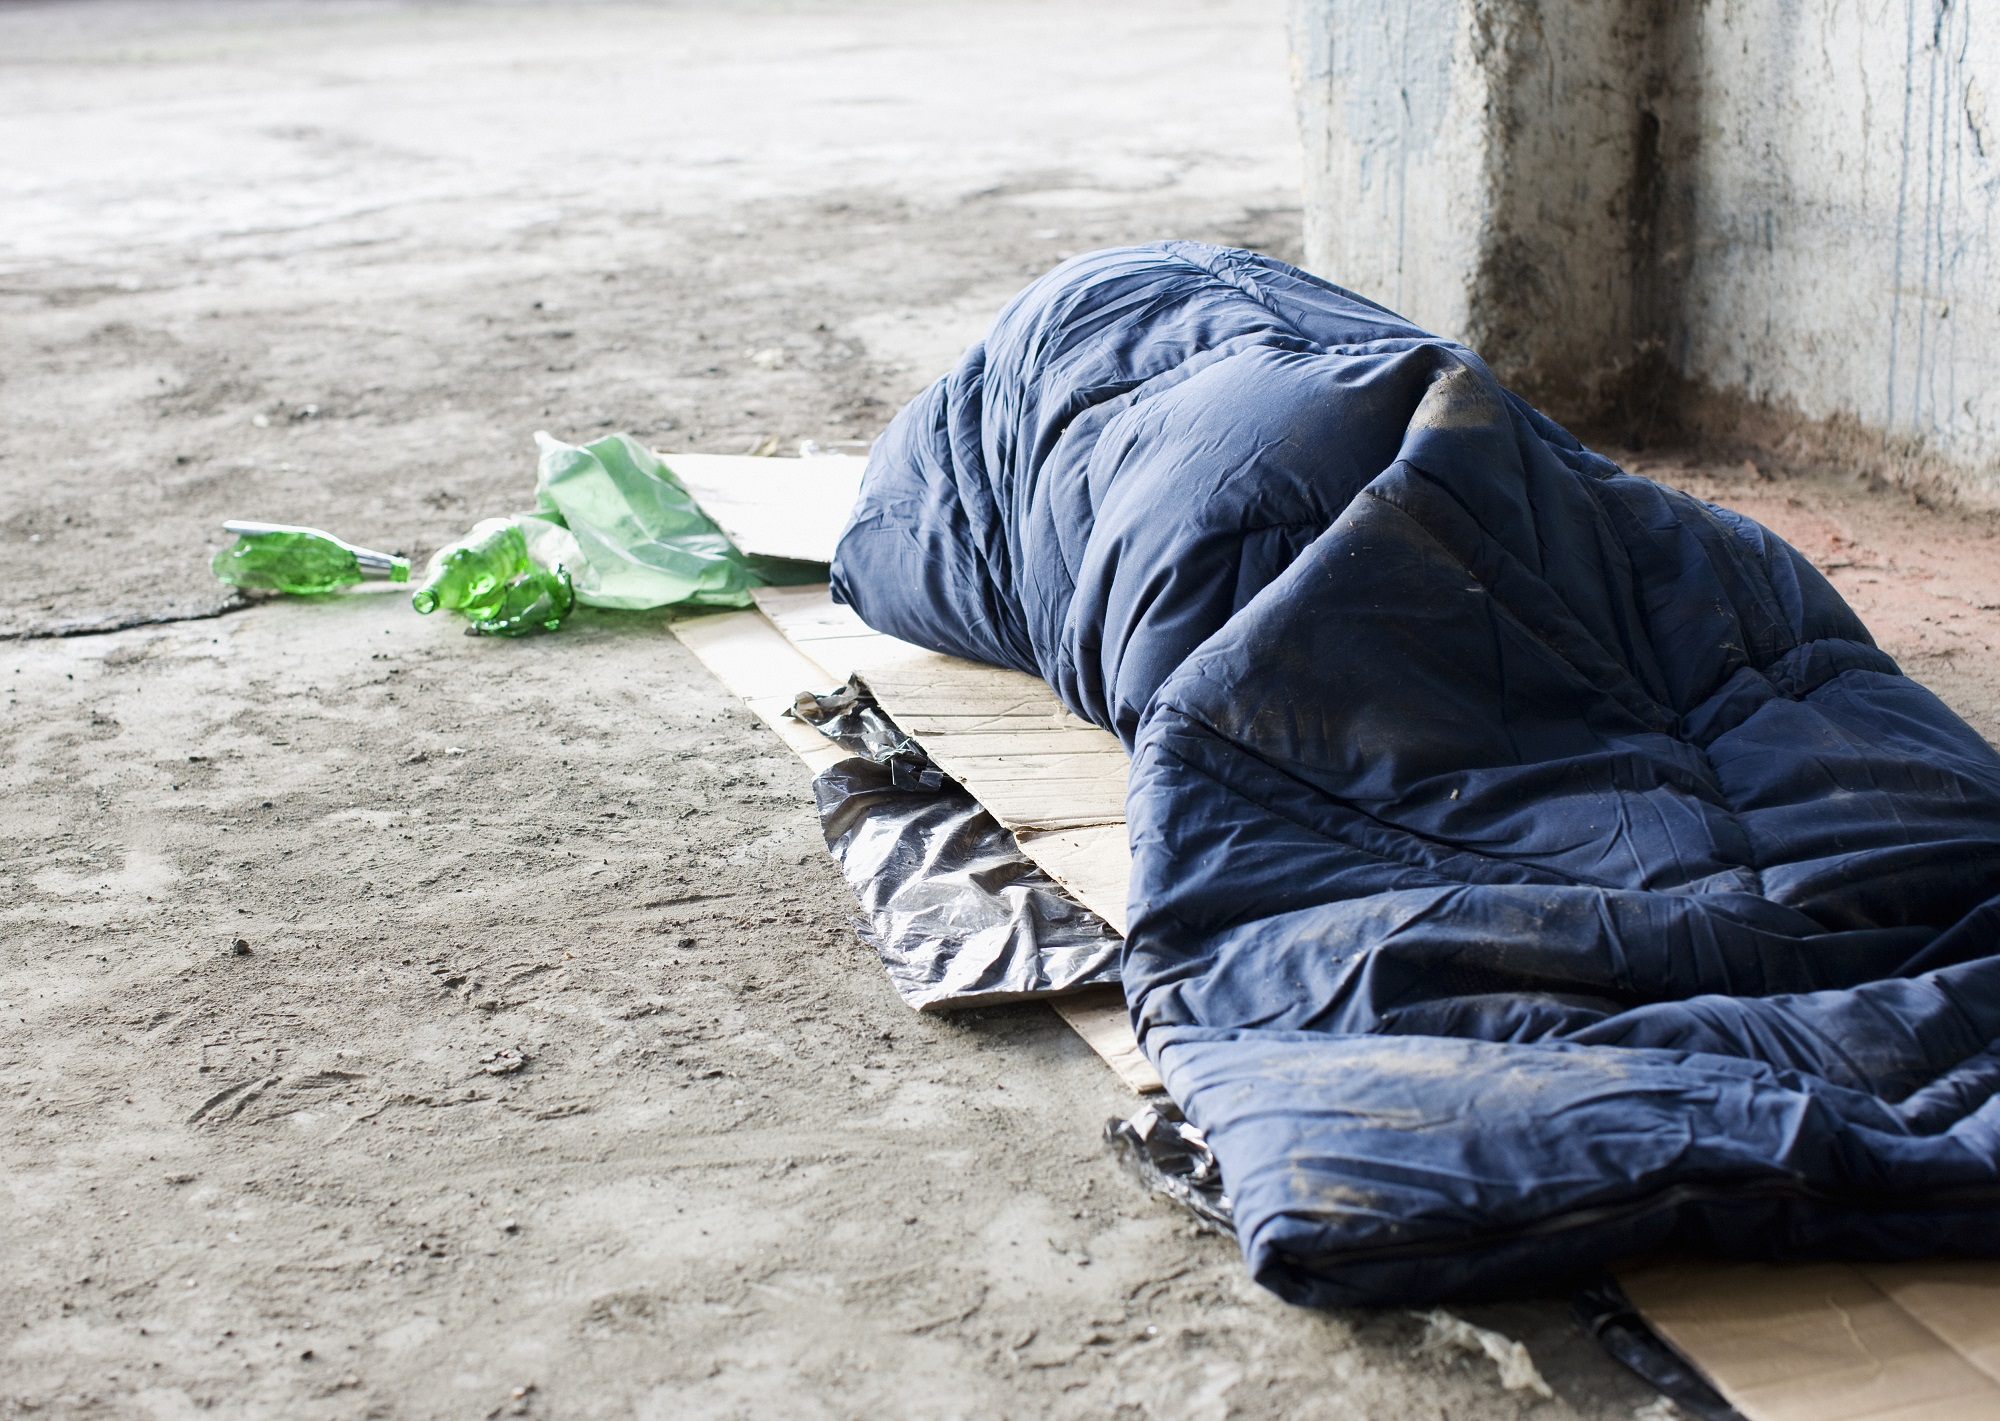 sars-cov-2-can-spread-rapidly-in-homeless-shelters